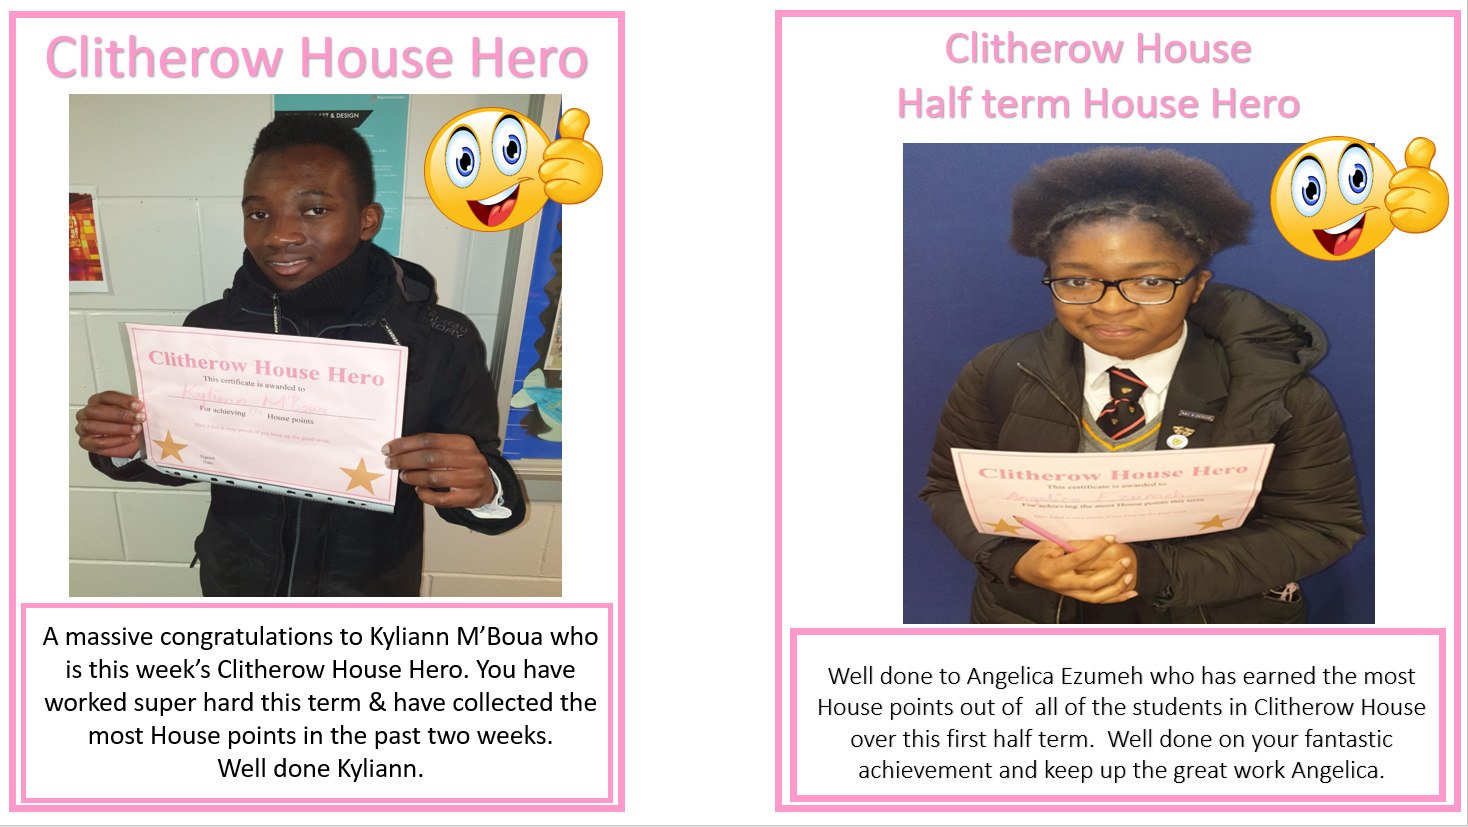 Clitherow House Hero's